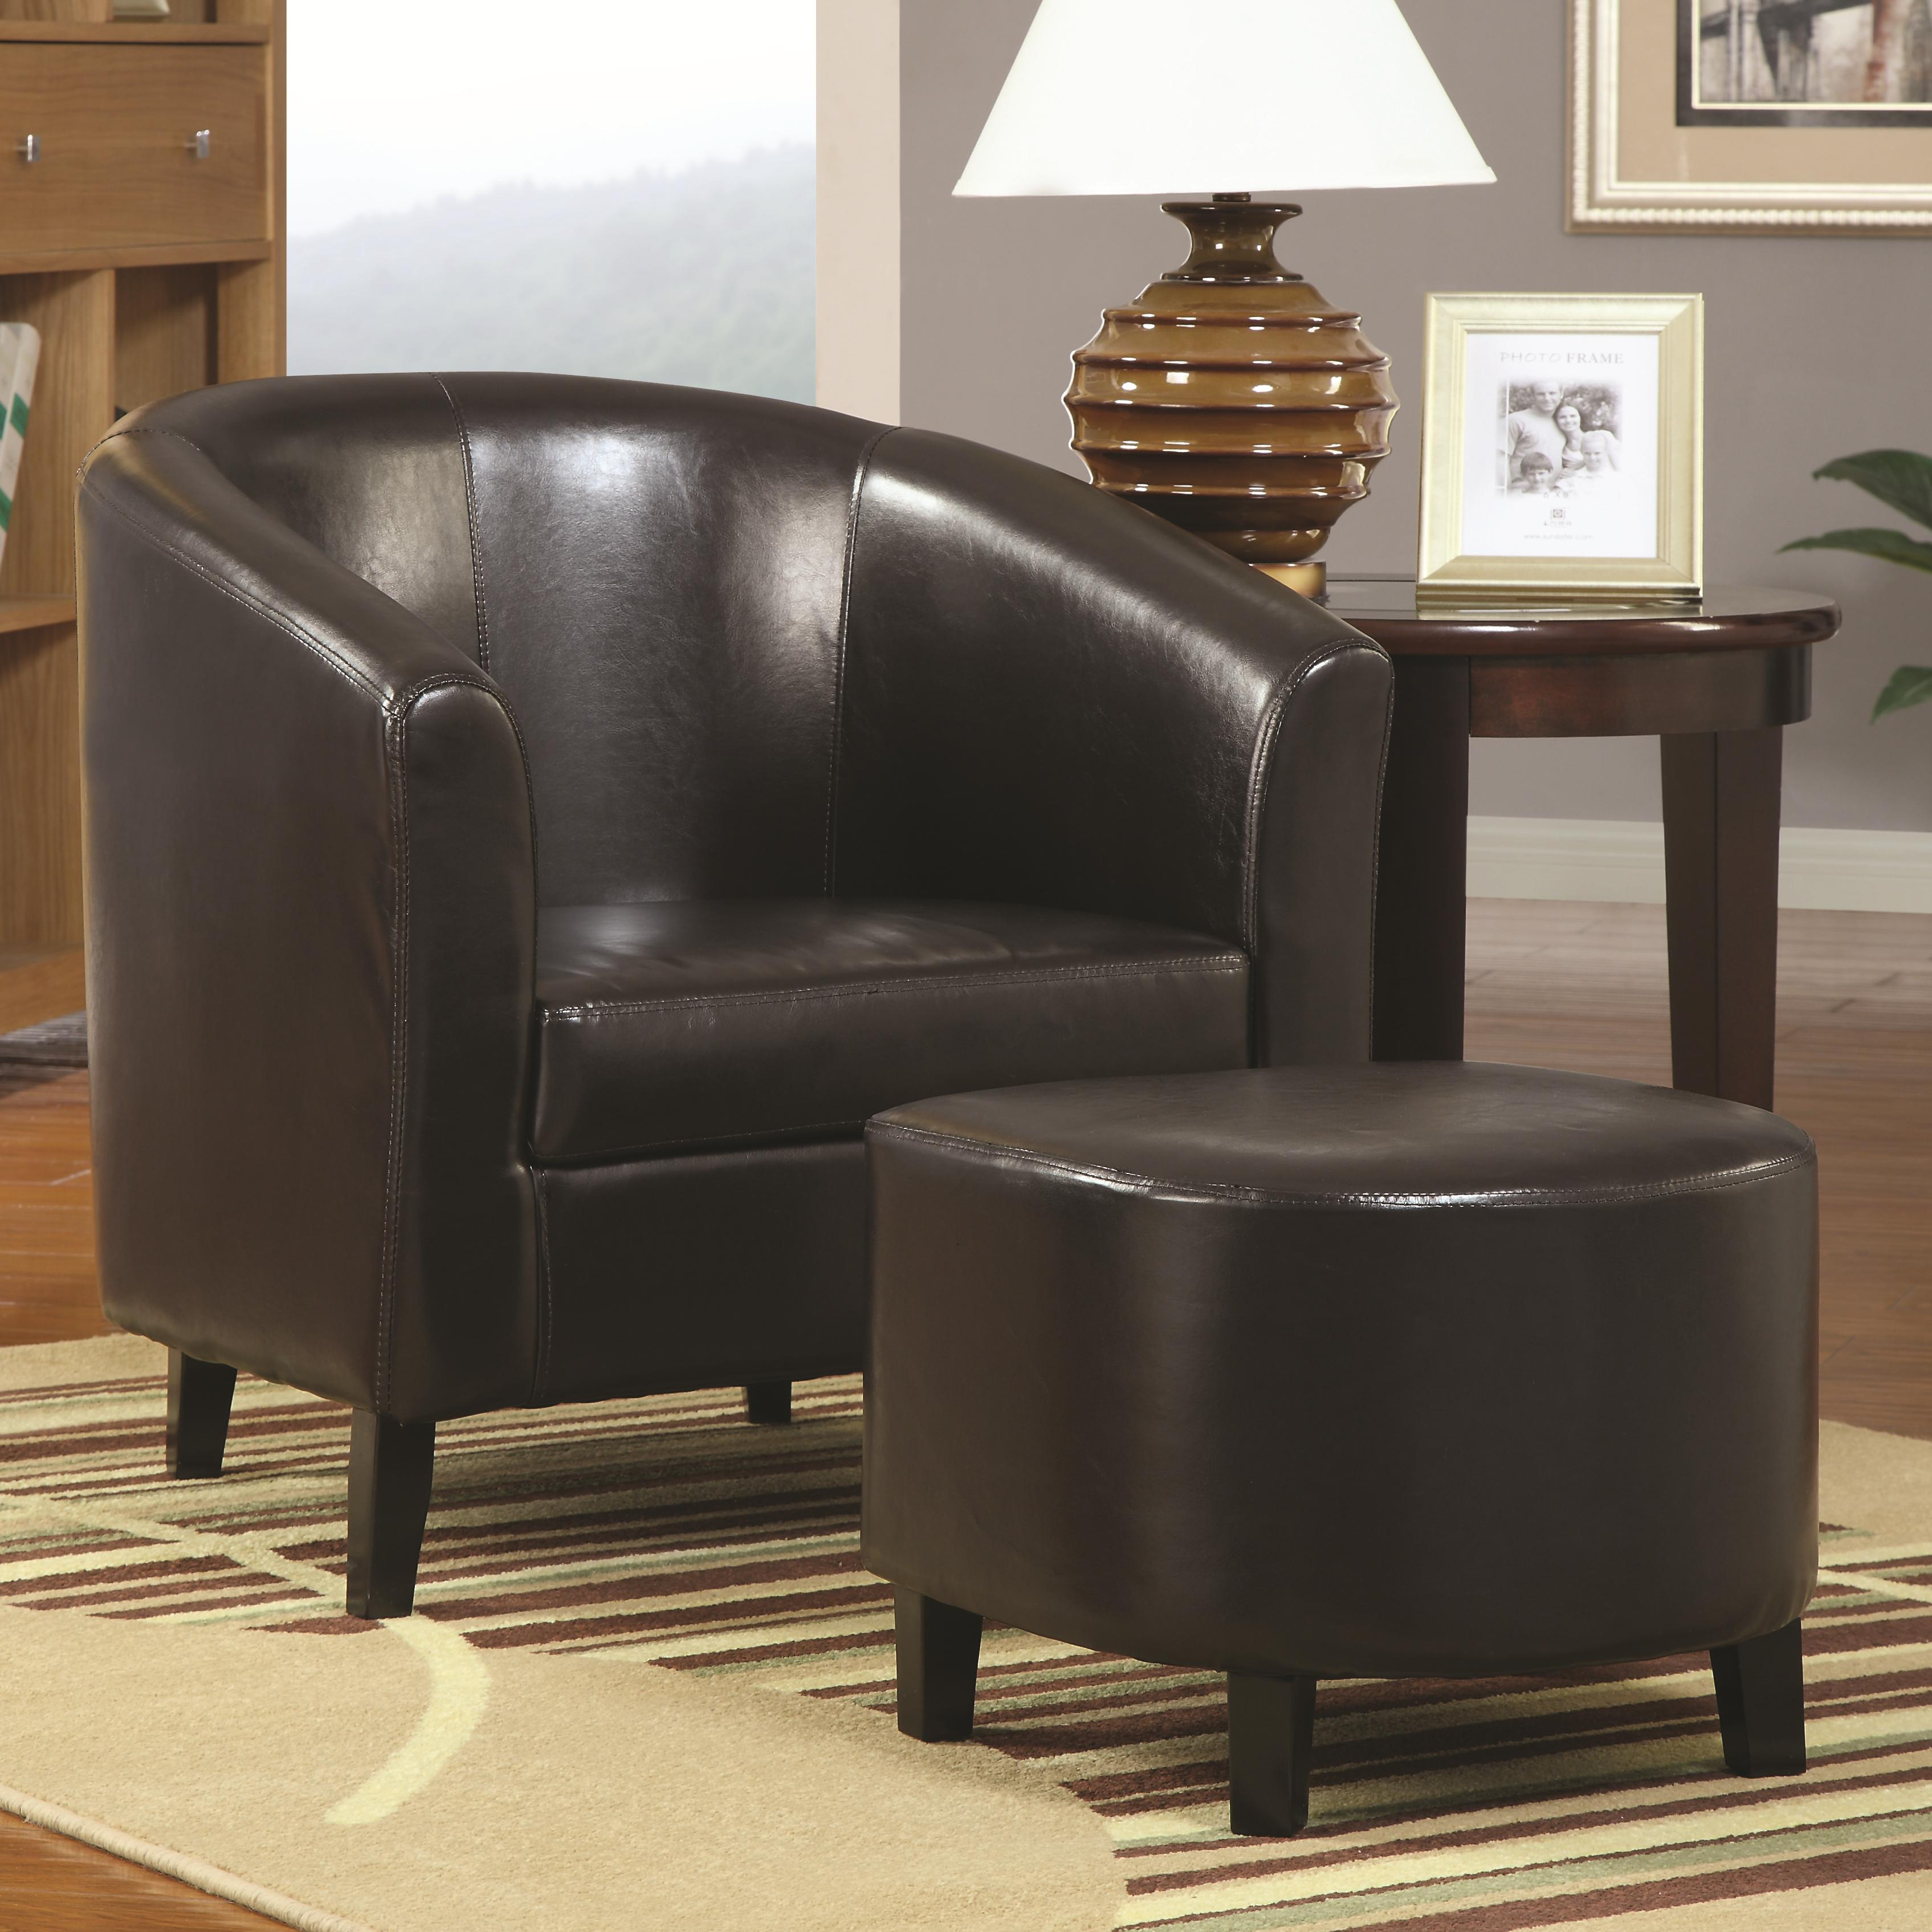 Coaster Accent Seating Accent Chair w Ottoman Value